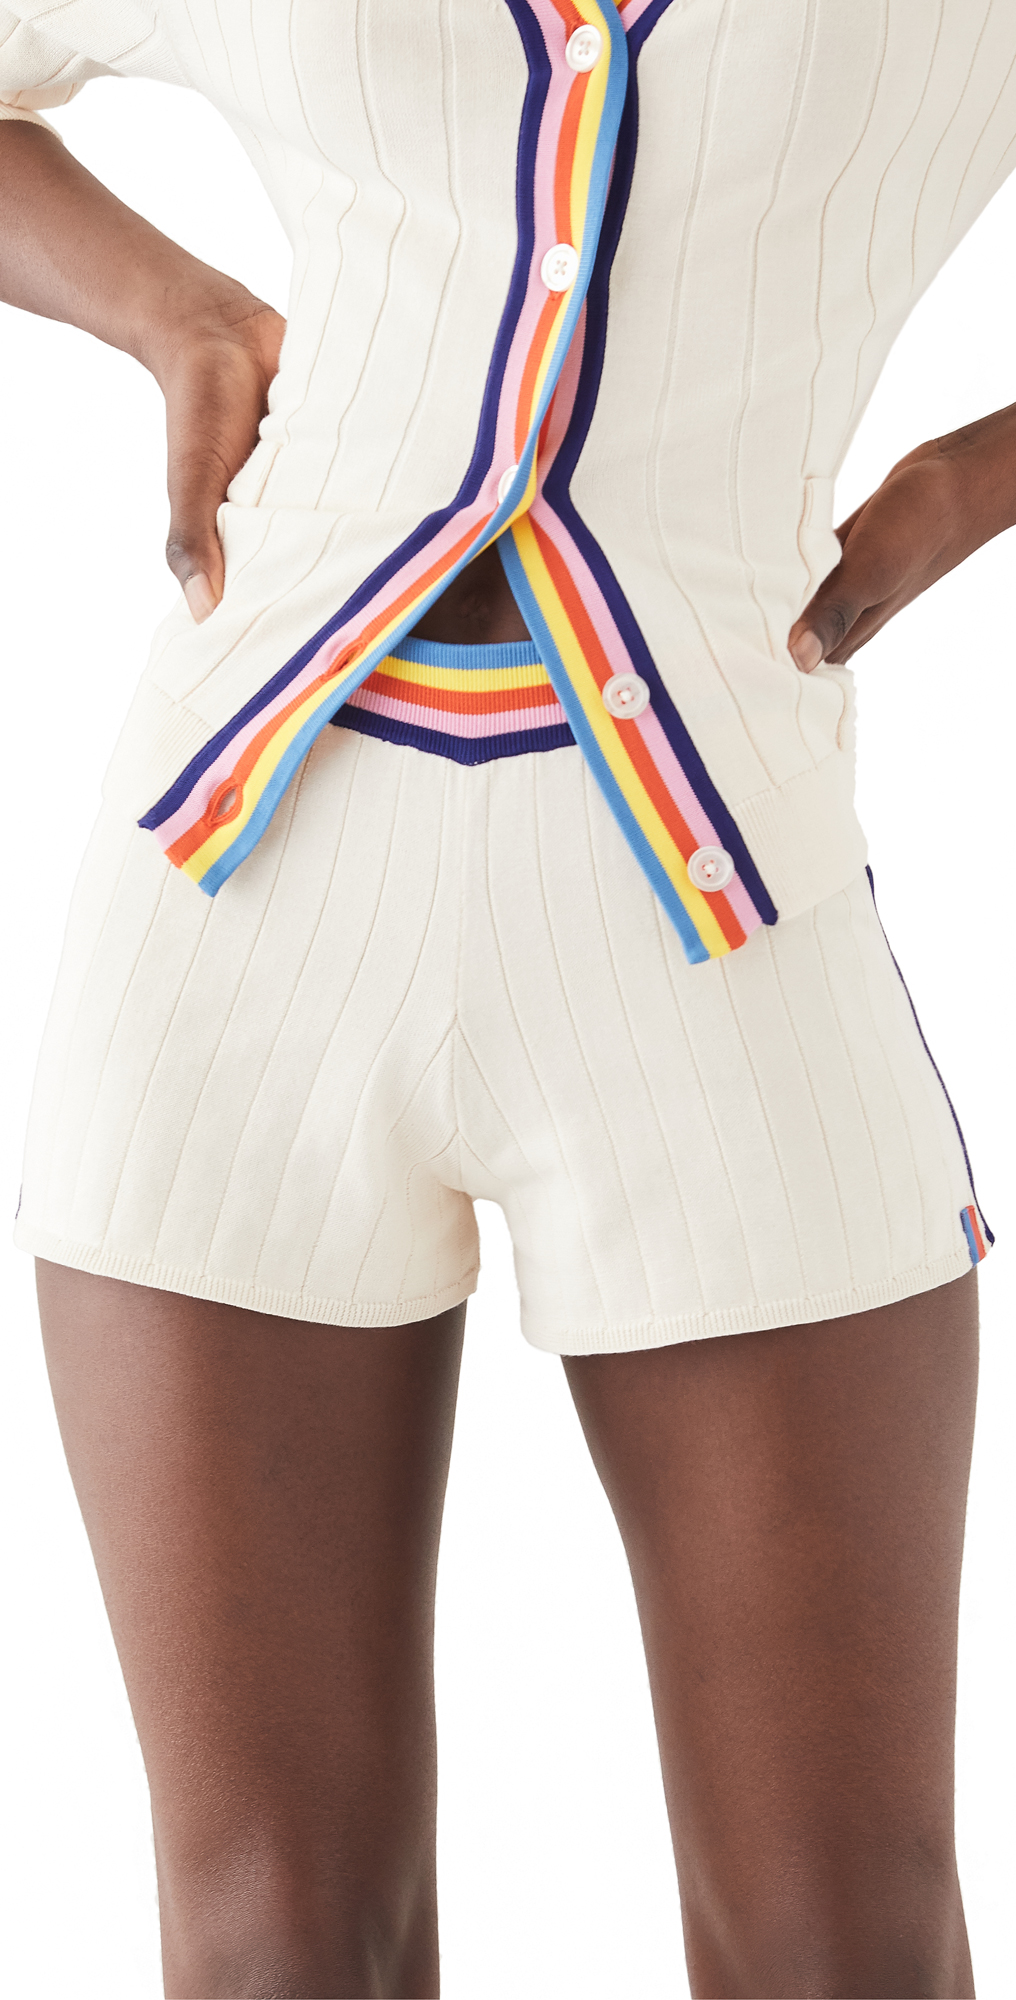 The Clover Shorts